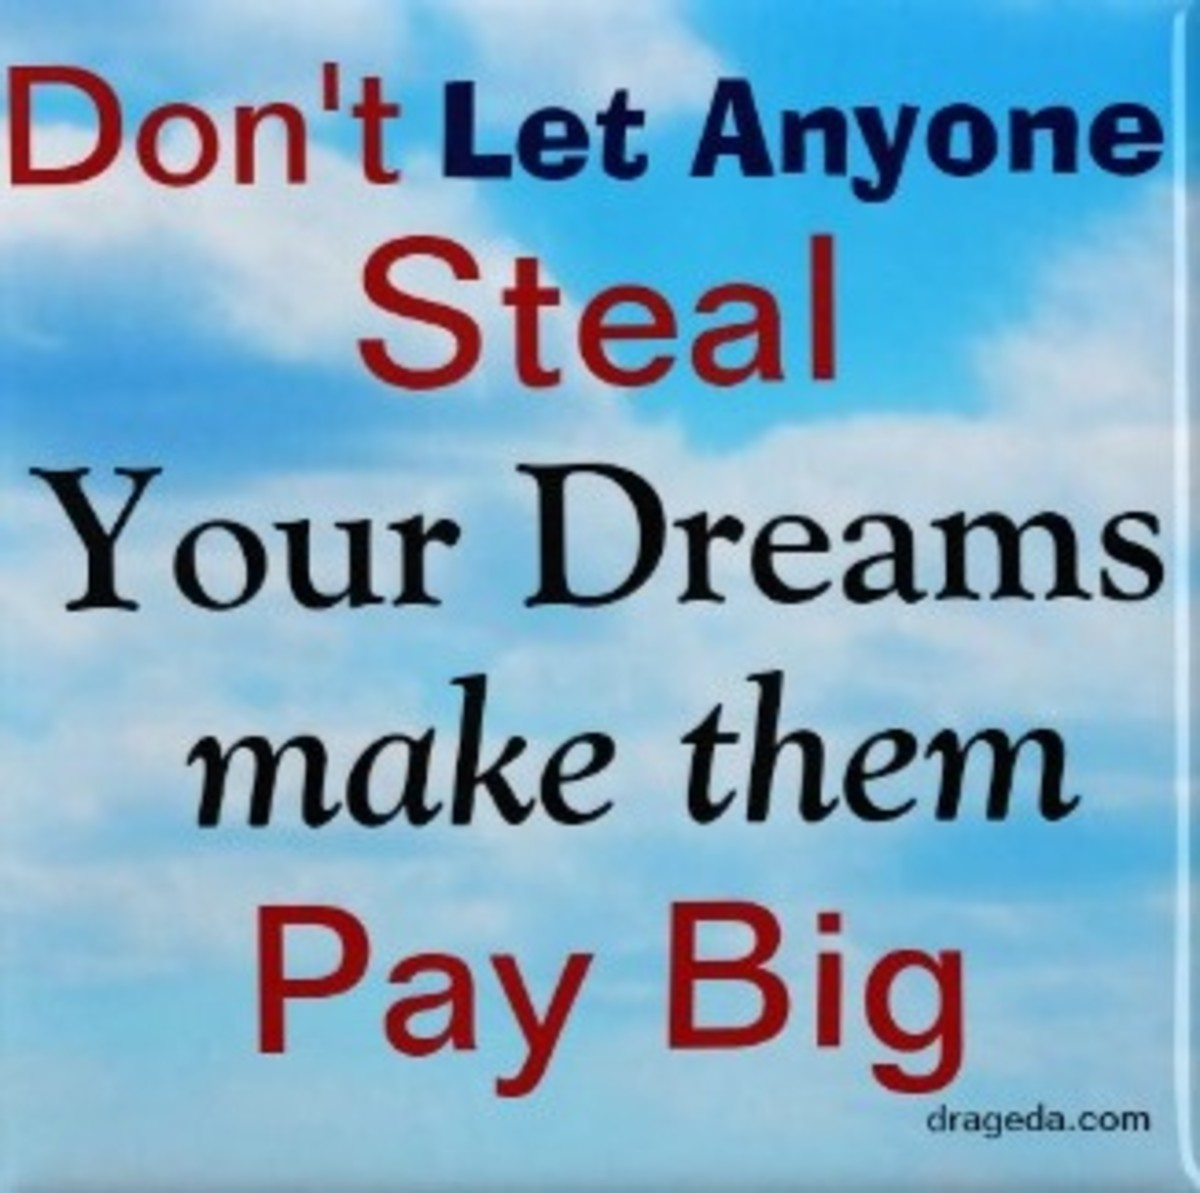 Don't let anyone steal your dreams, make them pay big